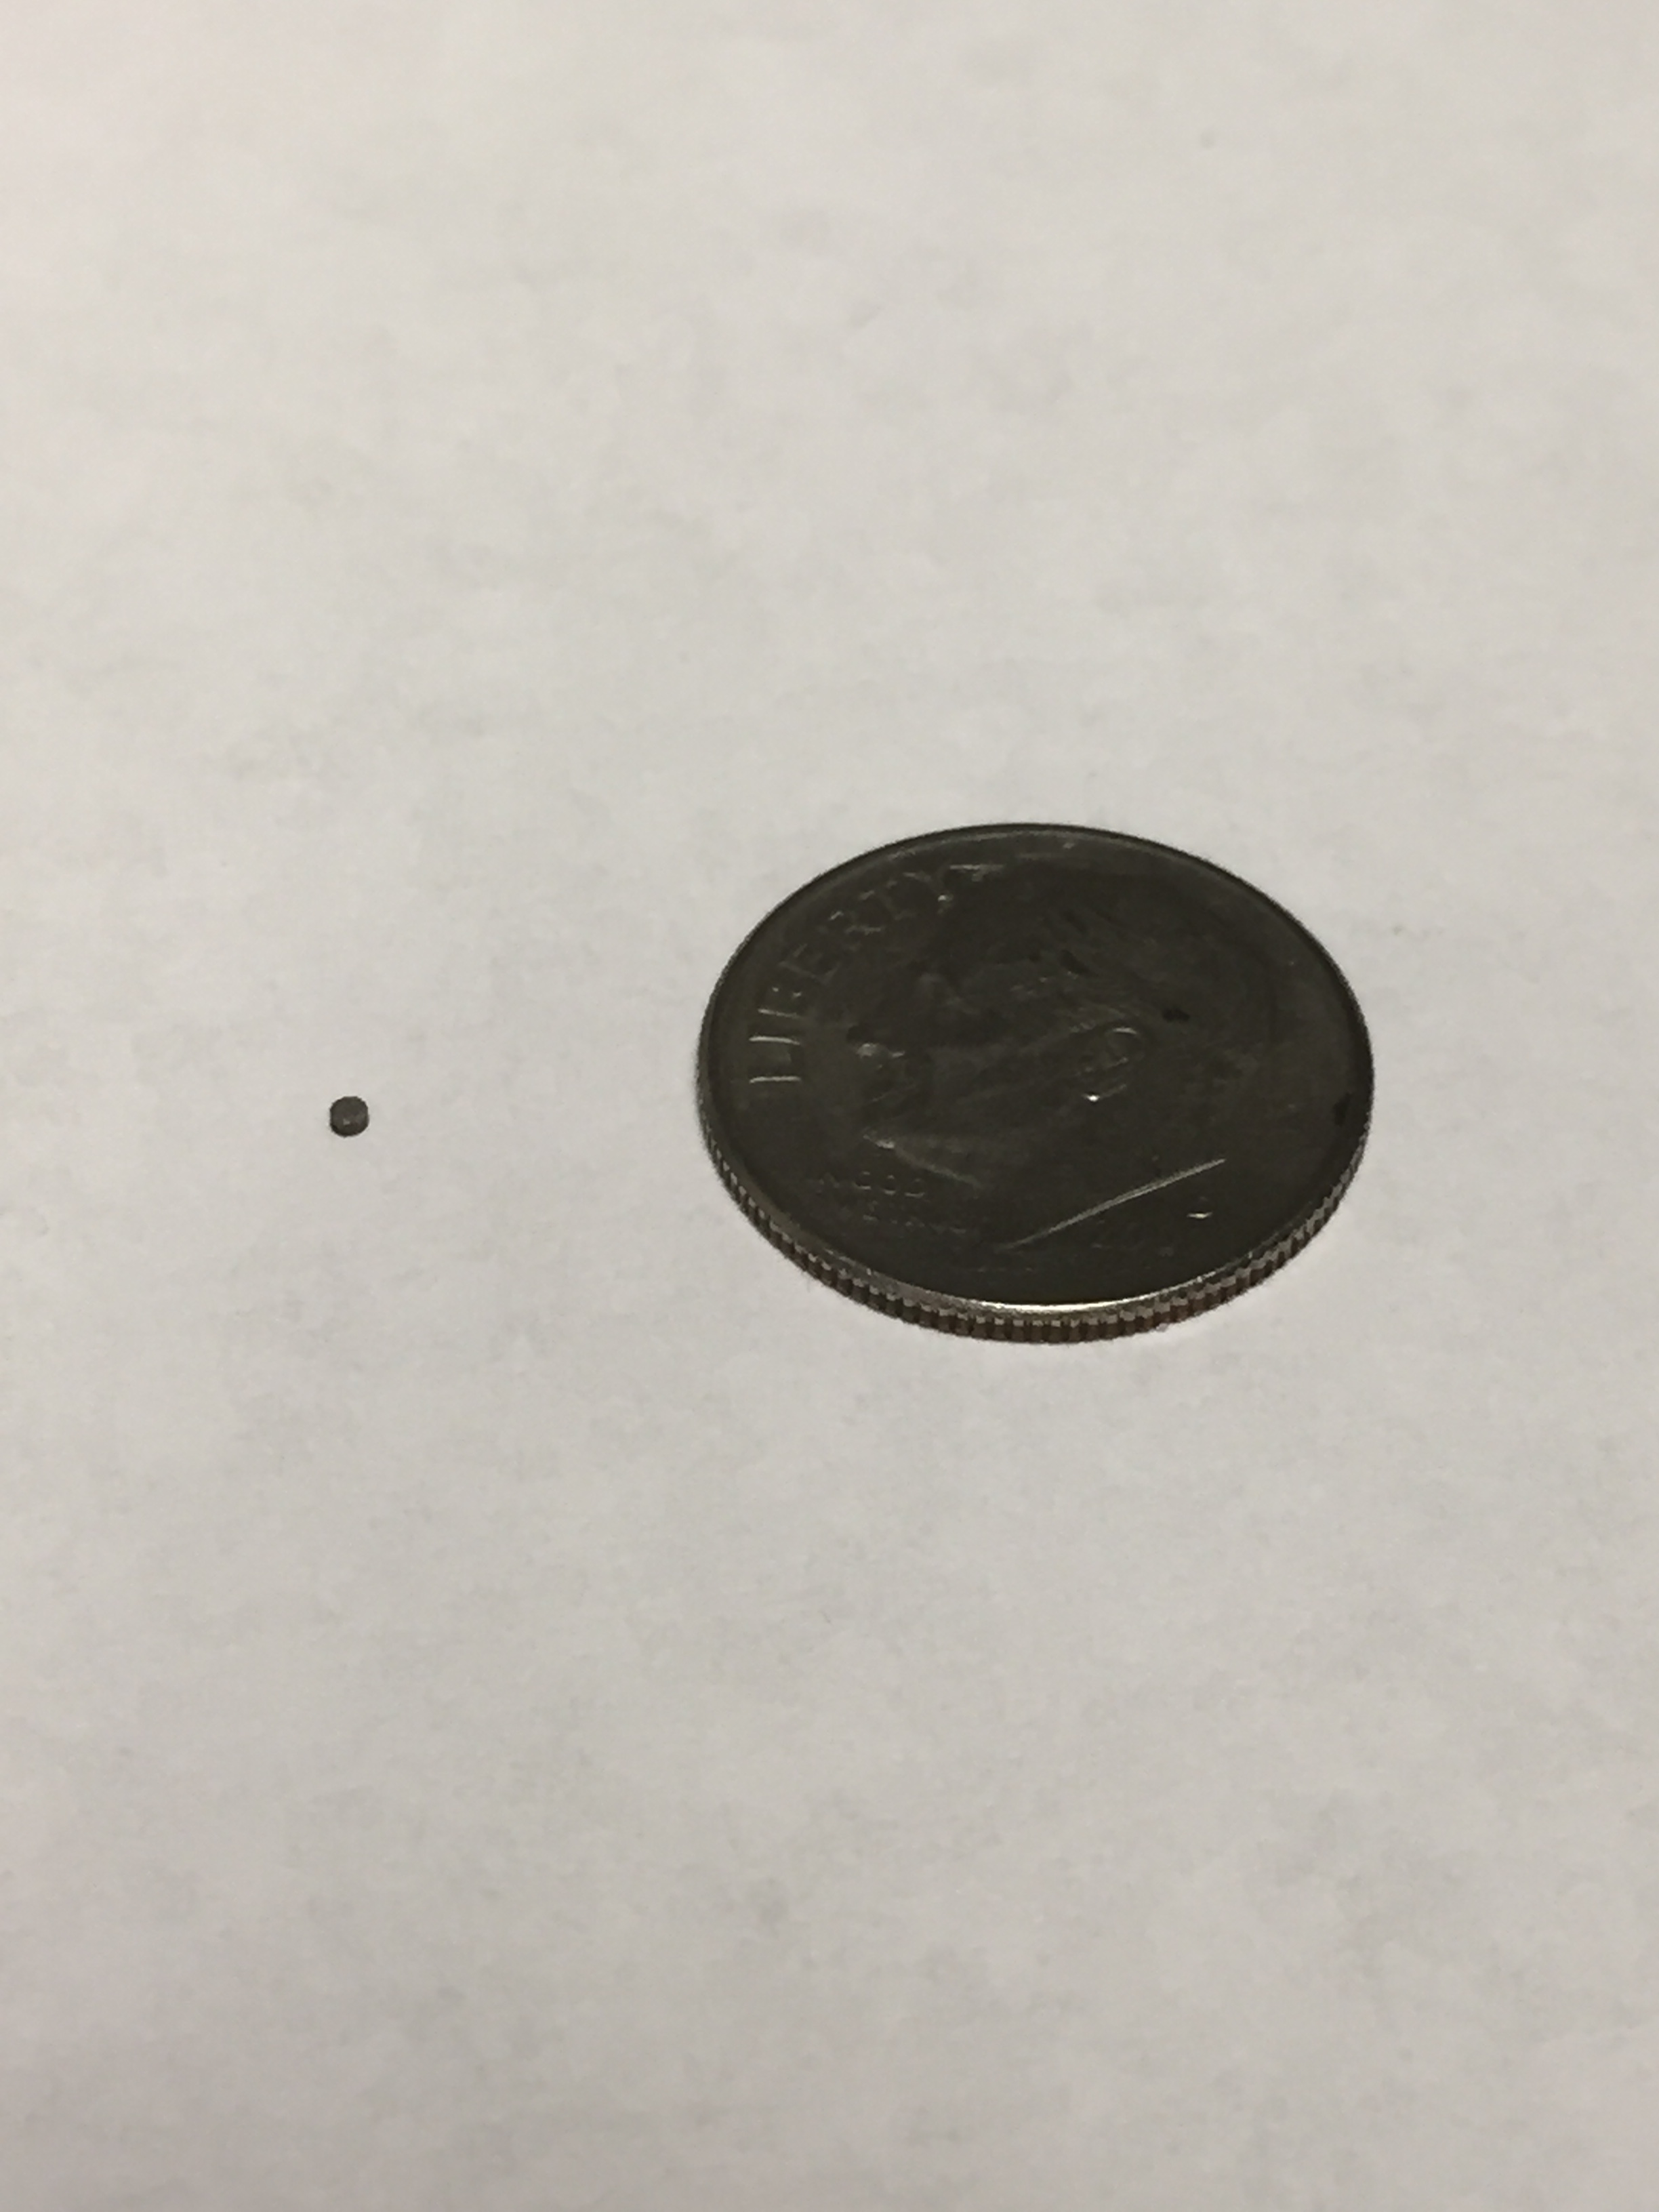 Micro Size Samarium Cobalt Magnet compared to dime